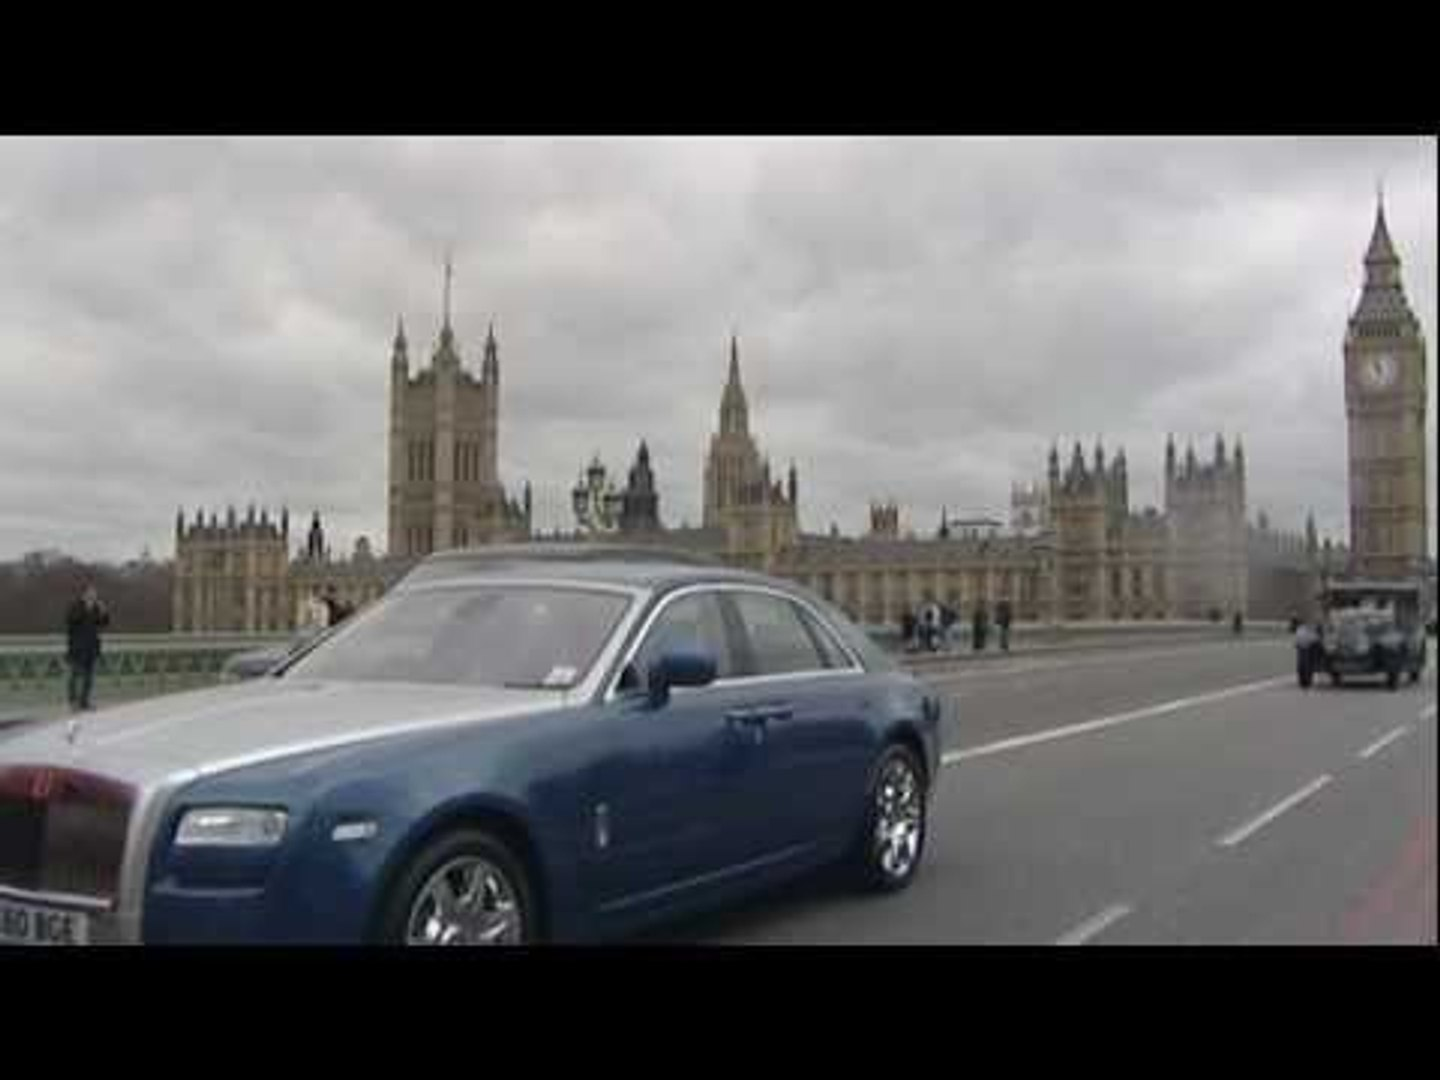 Rolls Royce The 100th anniversary of the Spirit of Ecstasy